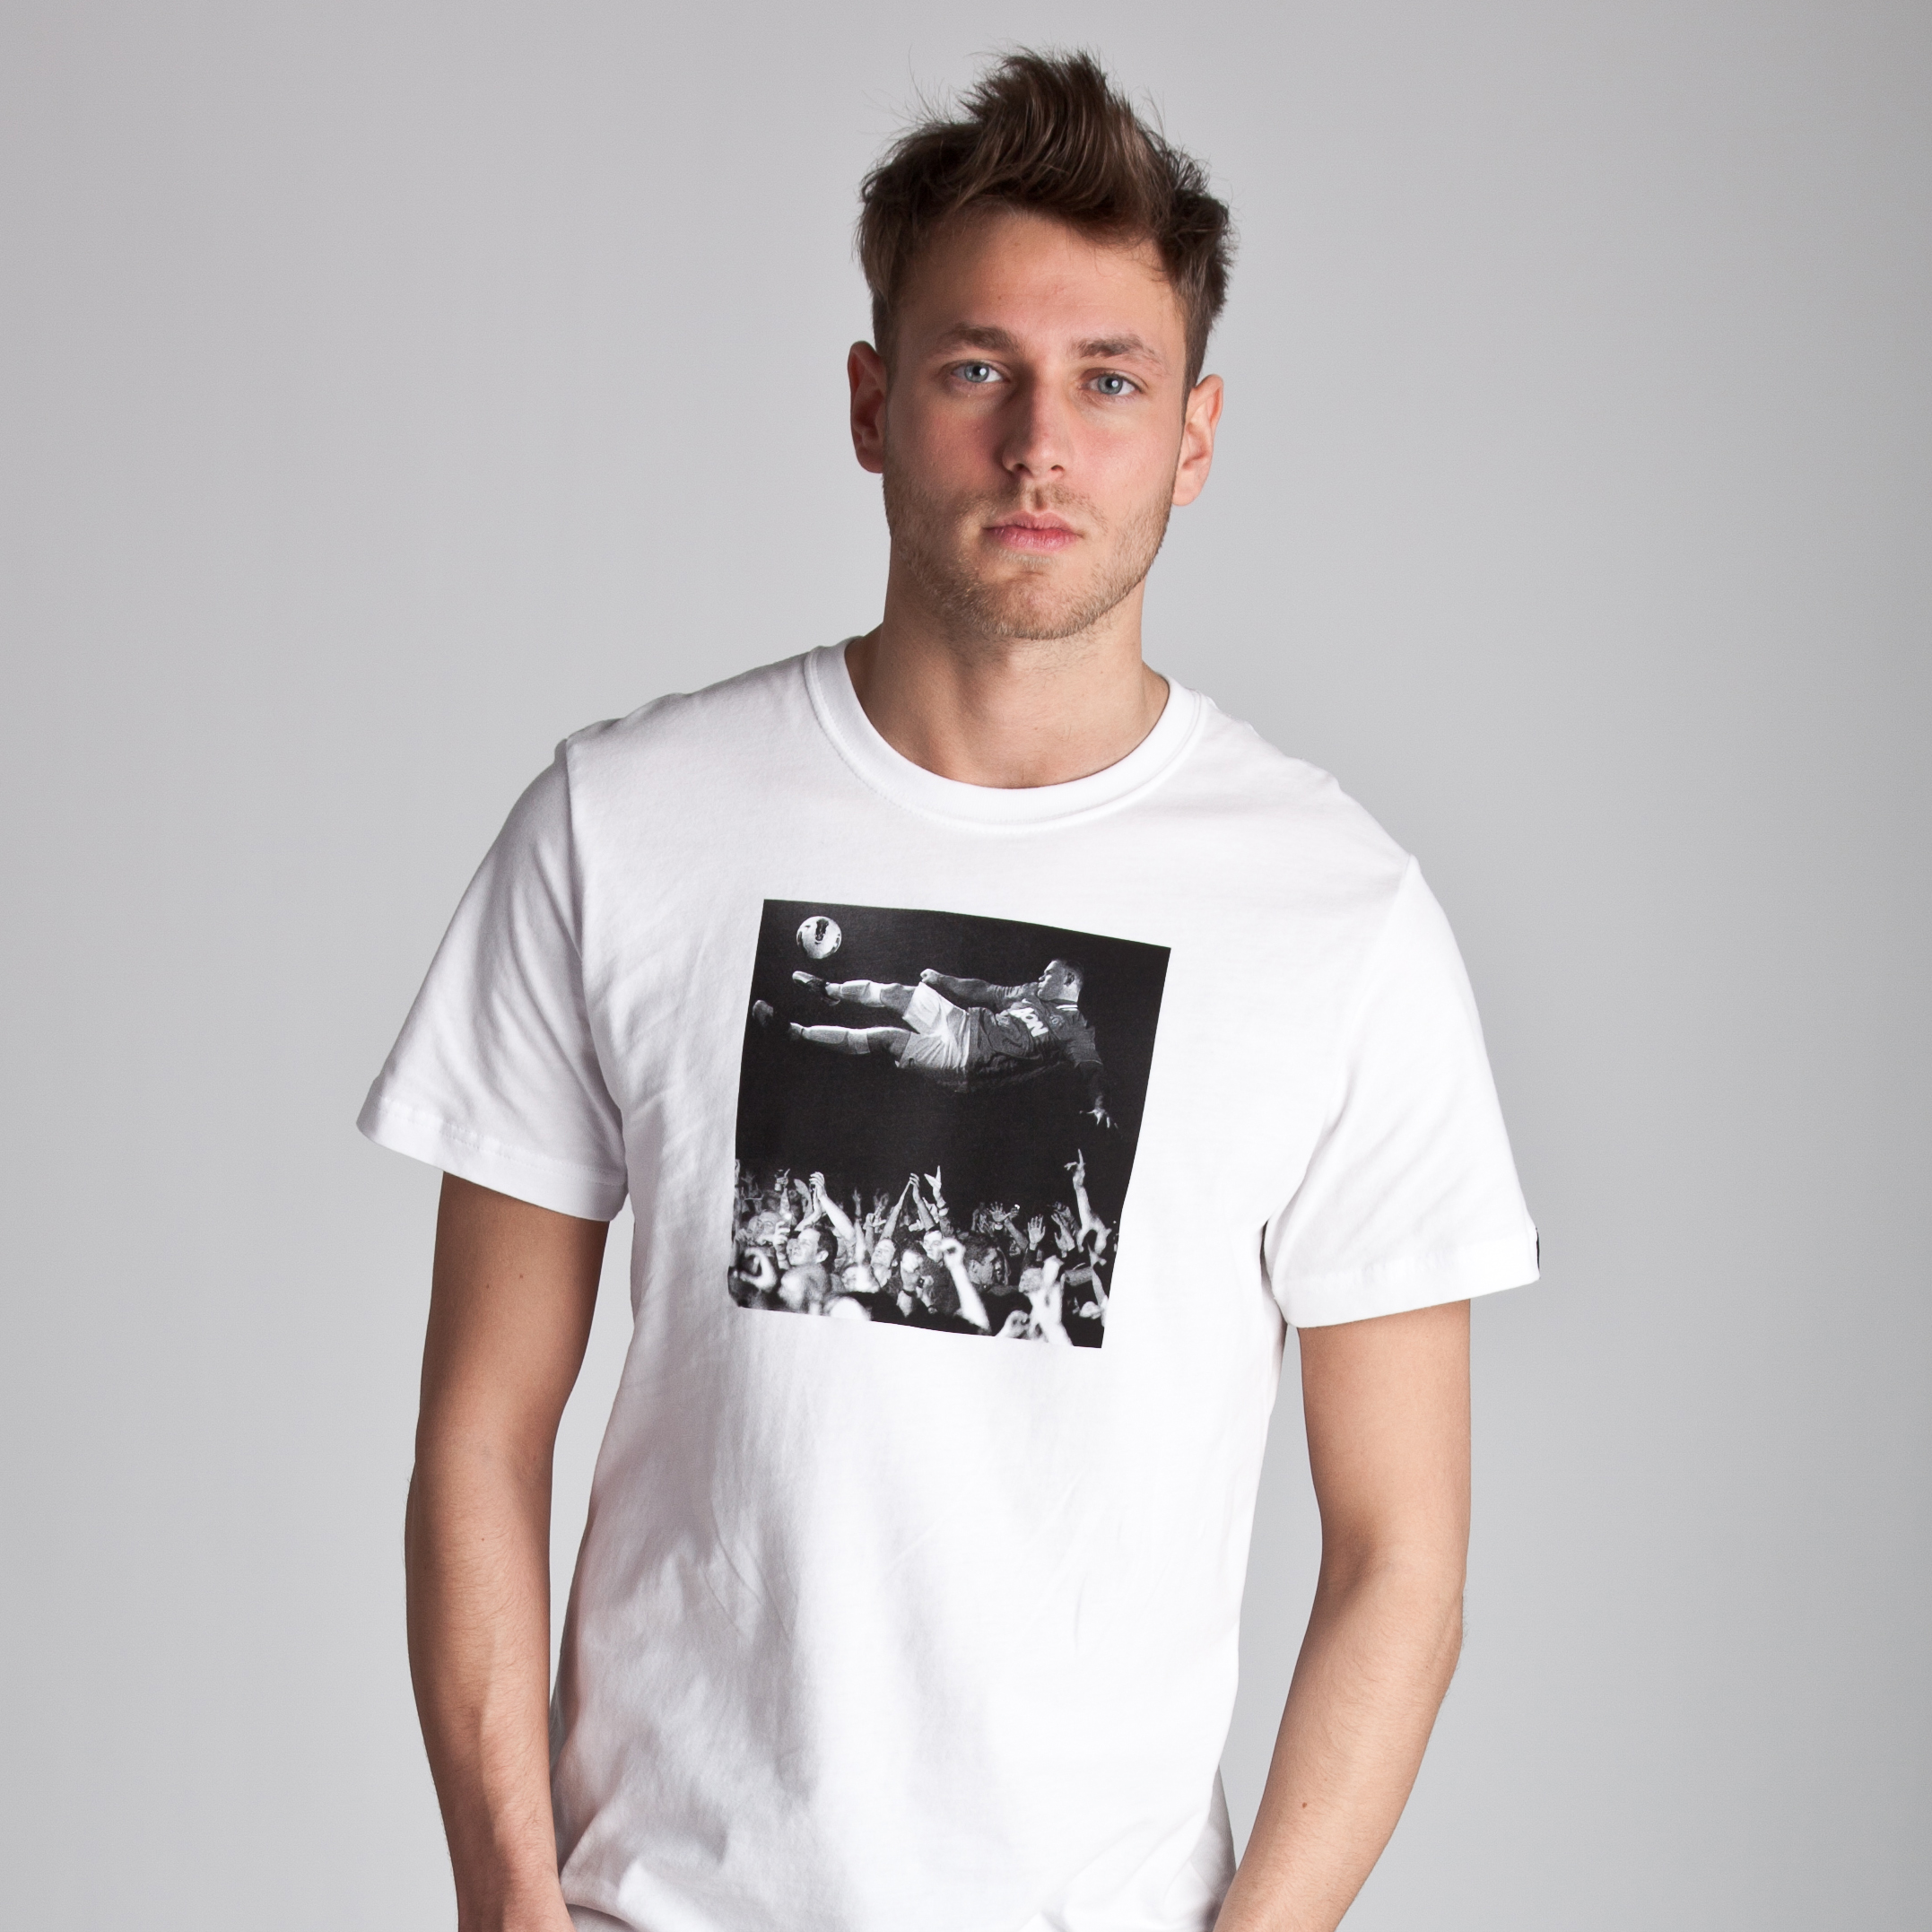 Manchester United Authentic T-Shirt - White/Pure Platinum